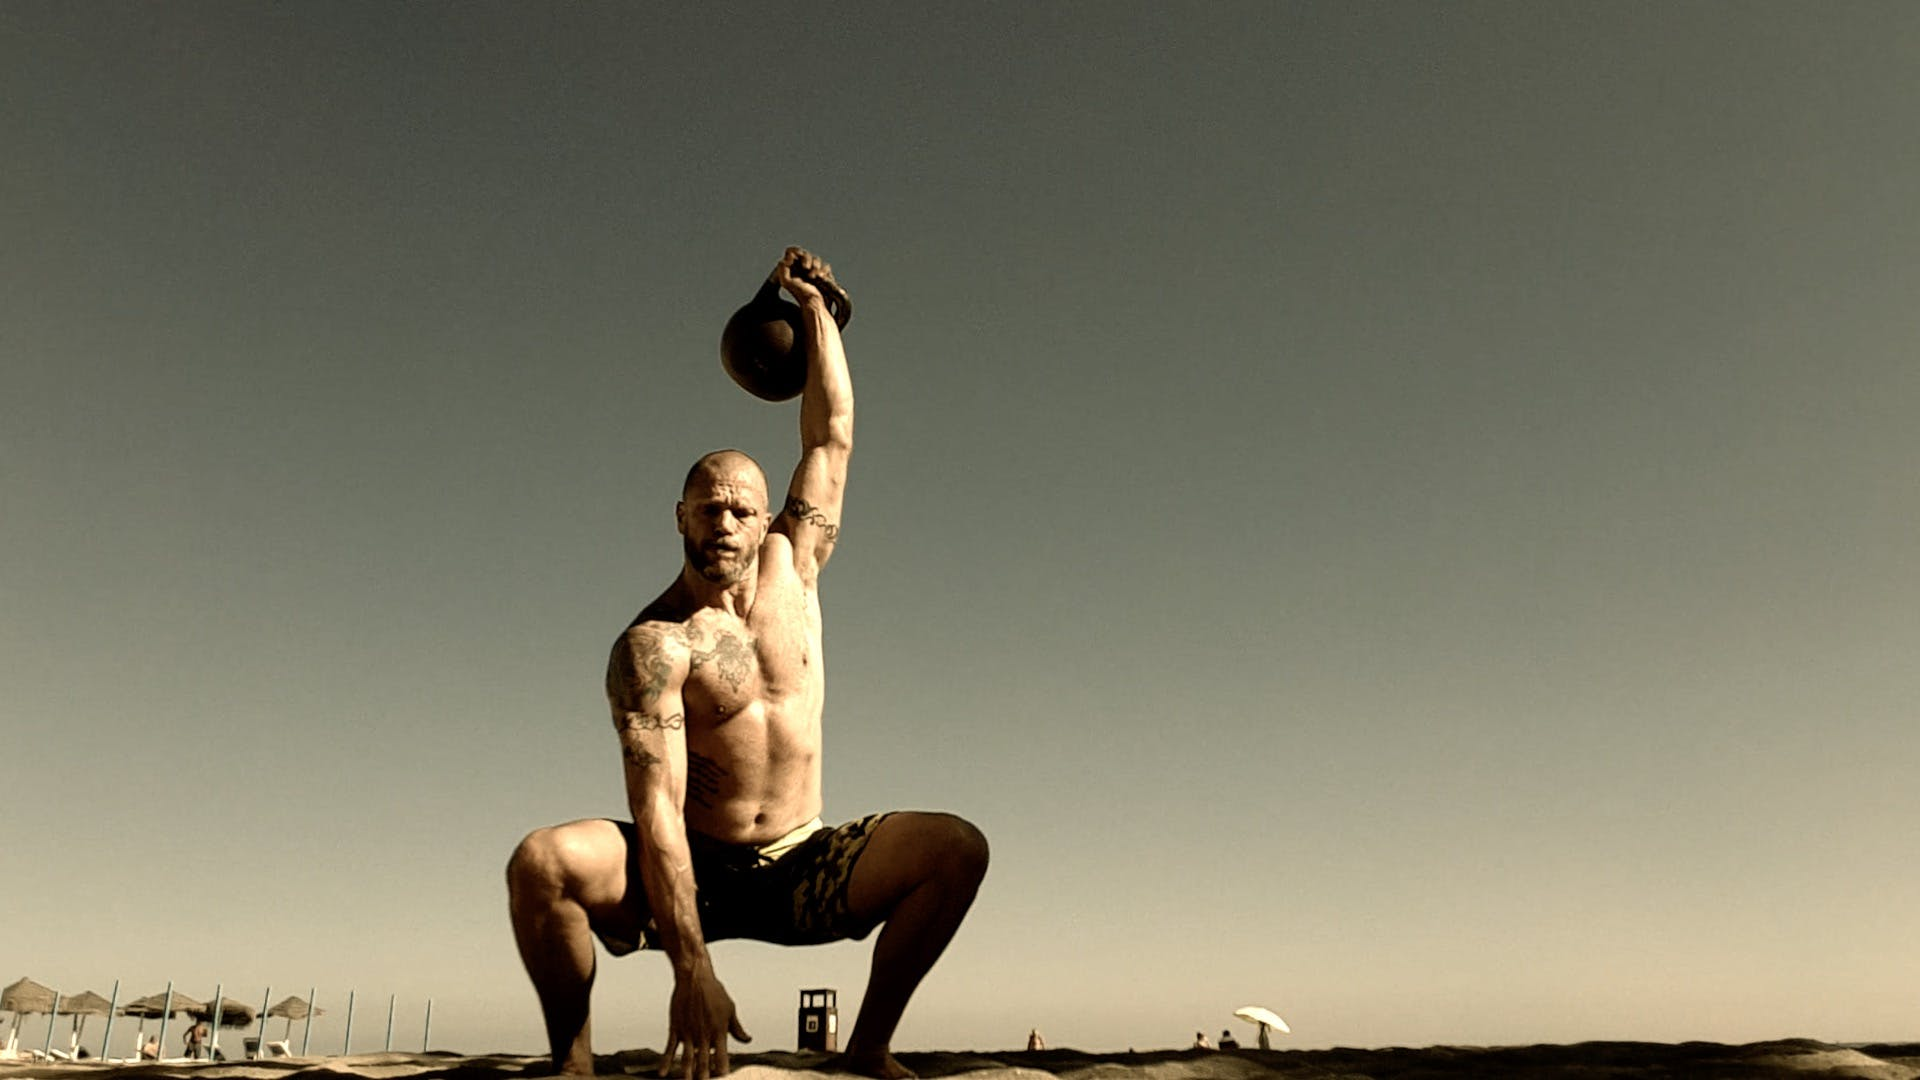 Free stock photo of beach, dead snatch, exercise, fitness